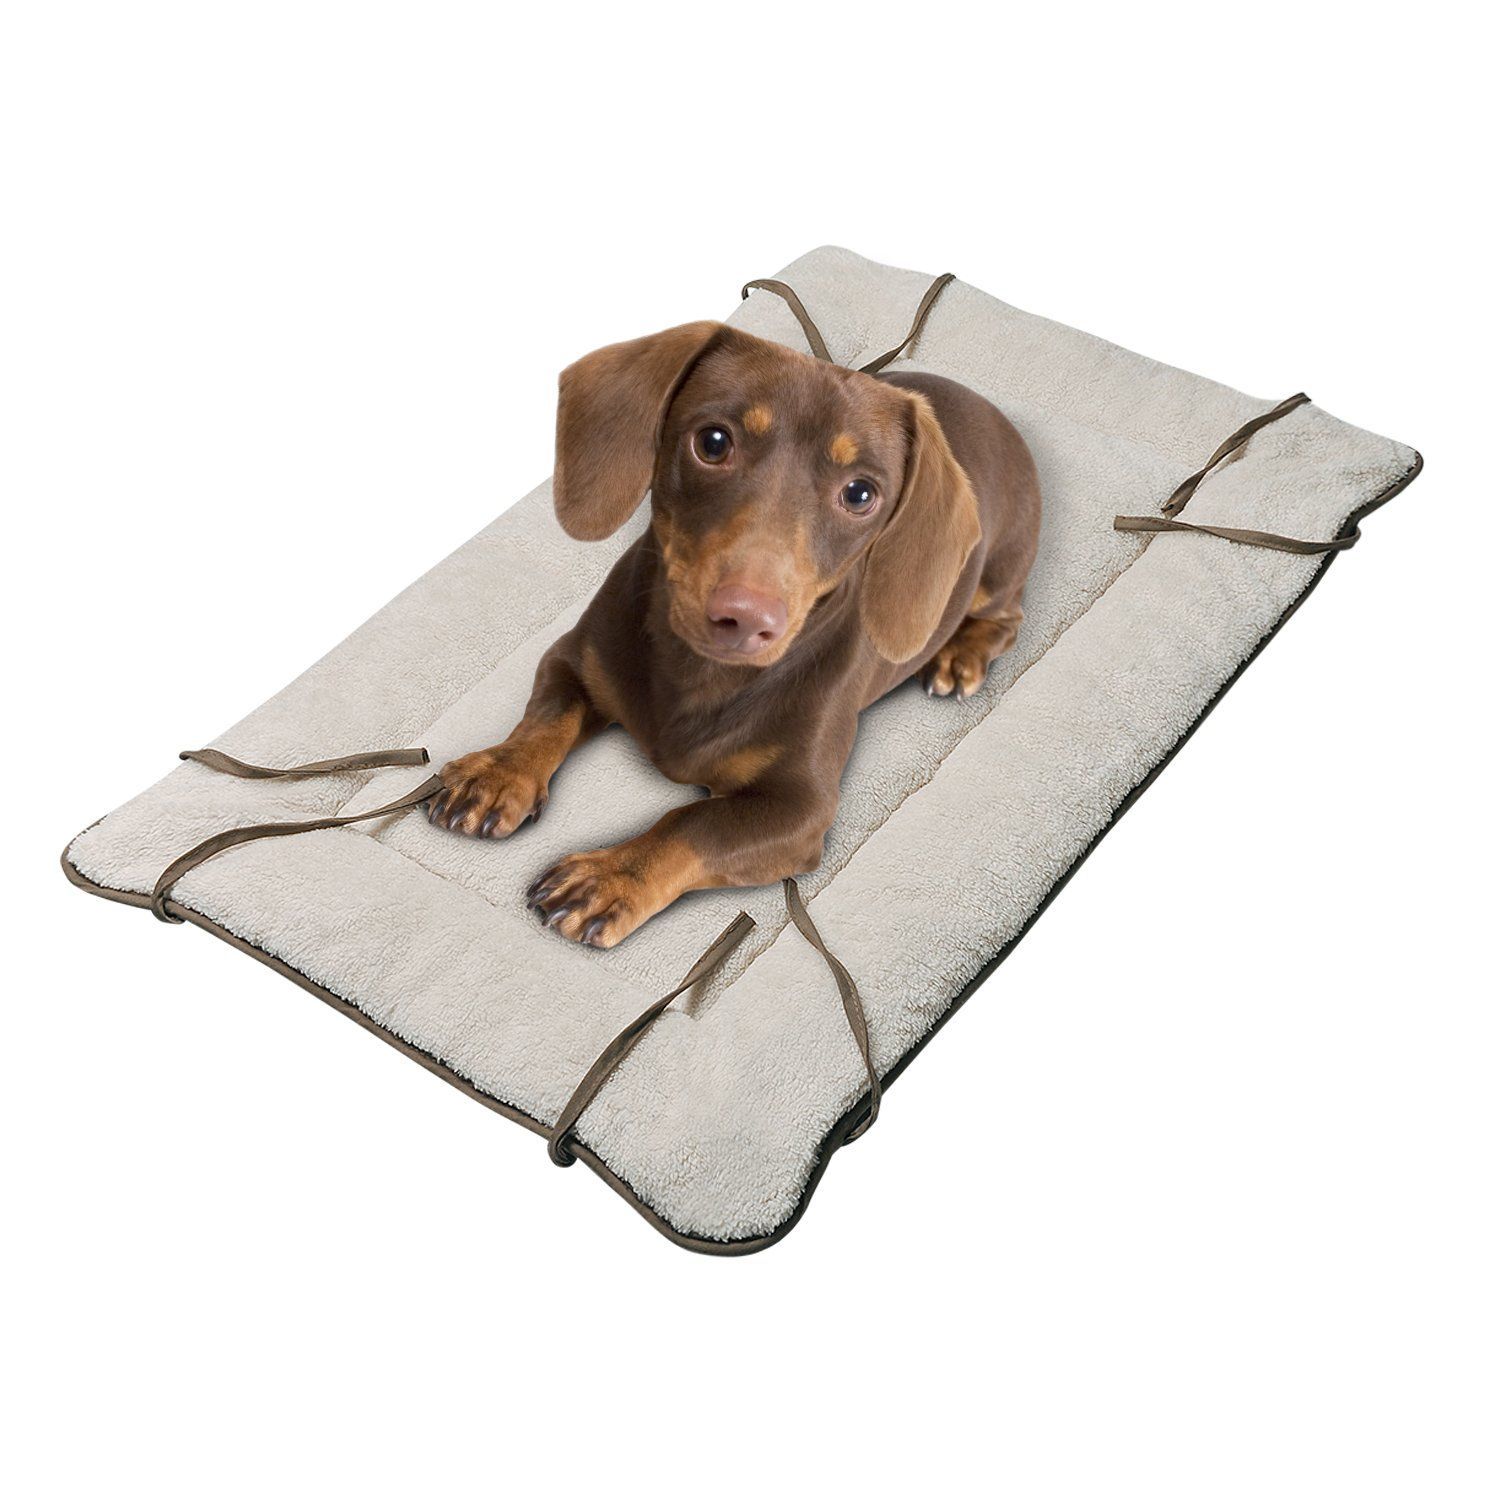 Dog Cuddler Bedwashable Crate Pad Mat Blanketsoft Plush Thick Pet